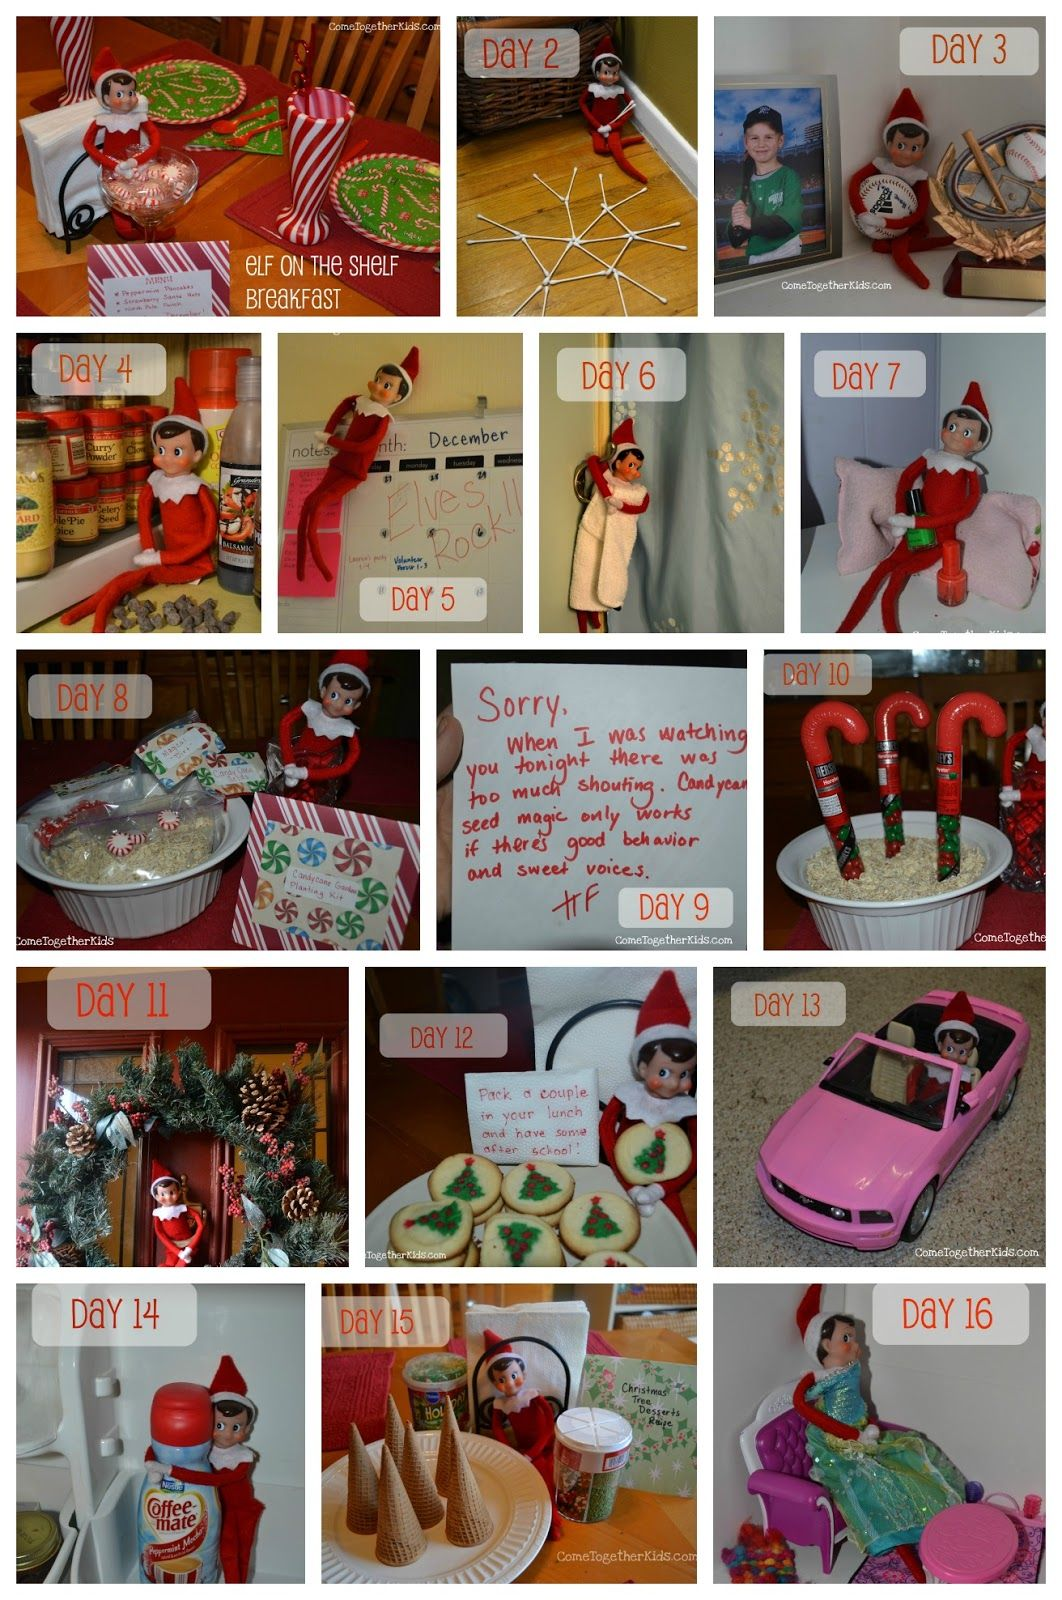 Come Together Kids: Elf on the Shelf Ideas